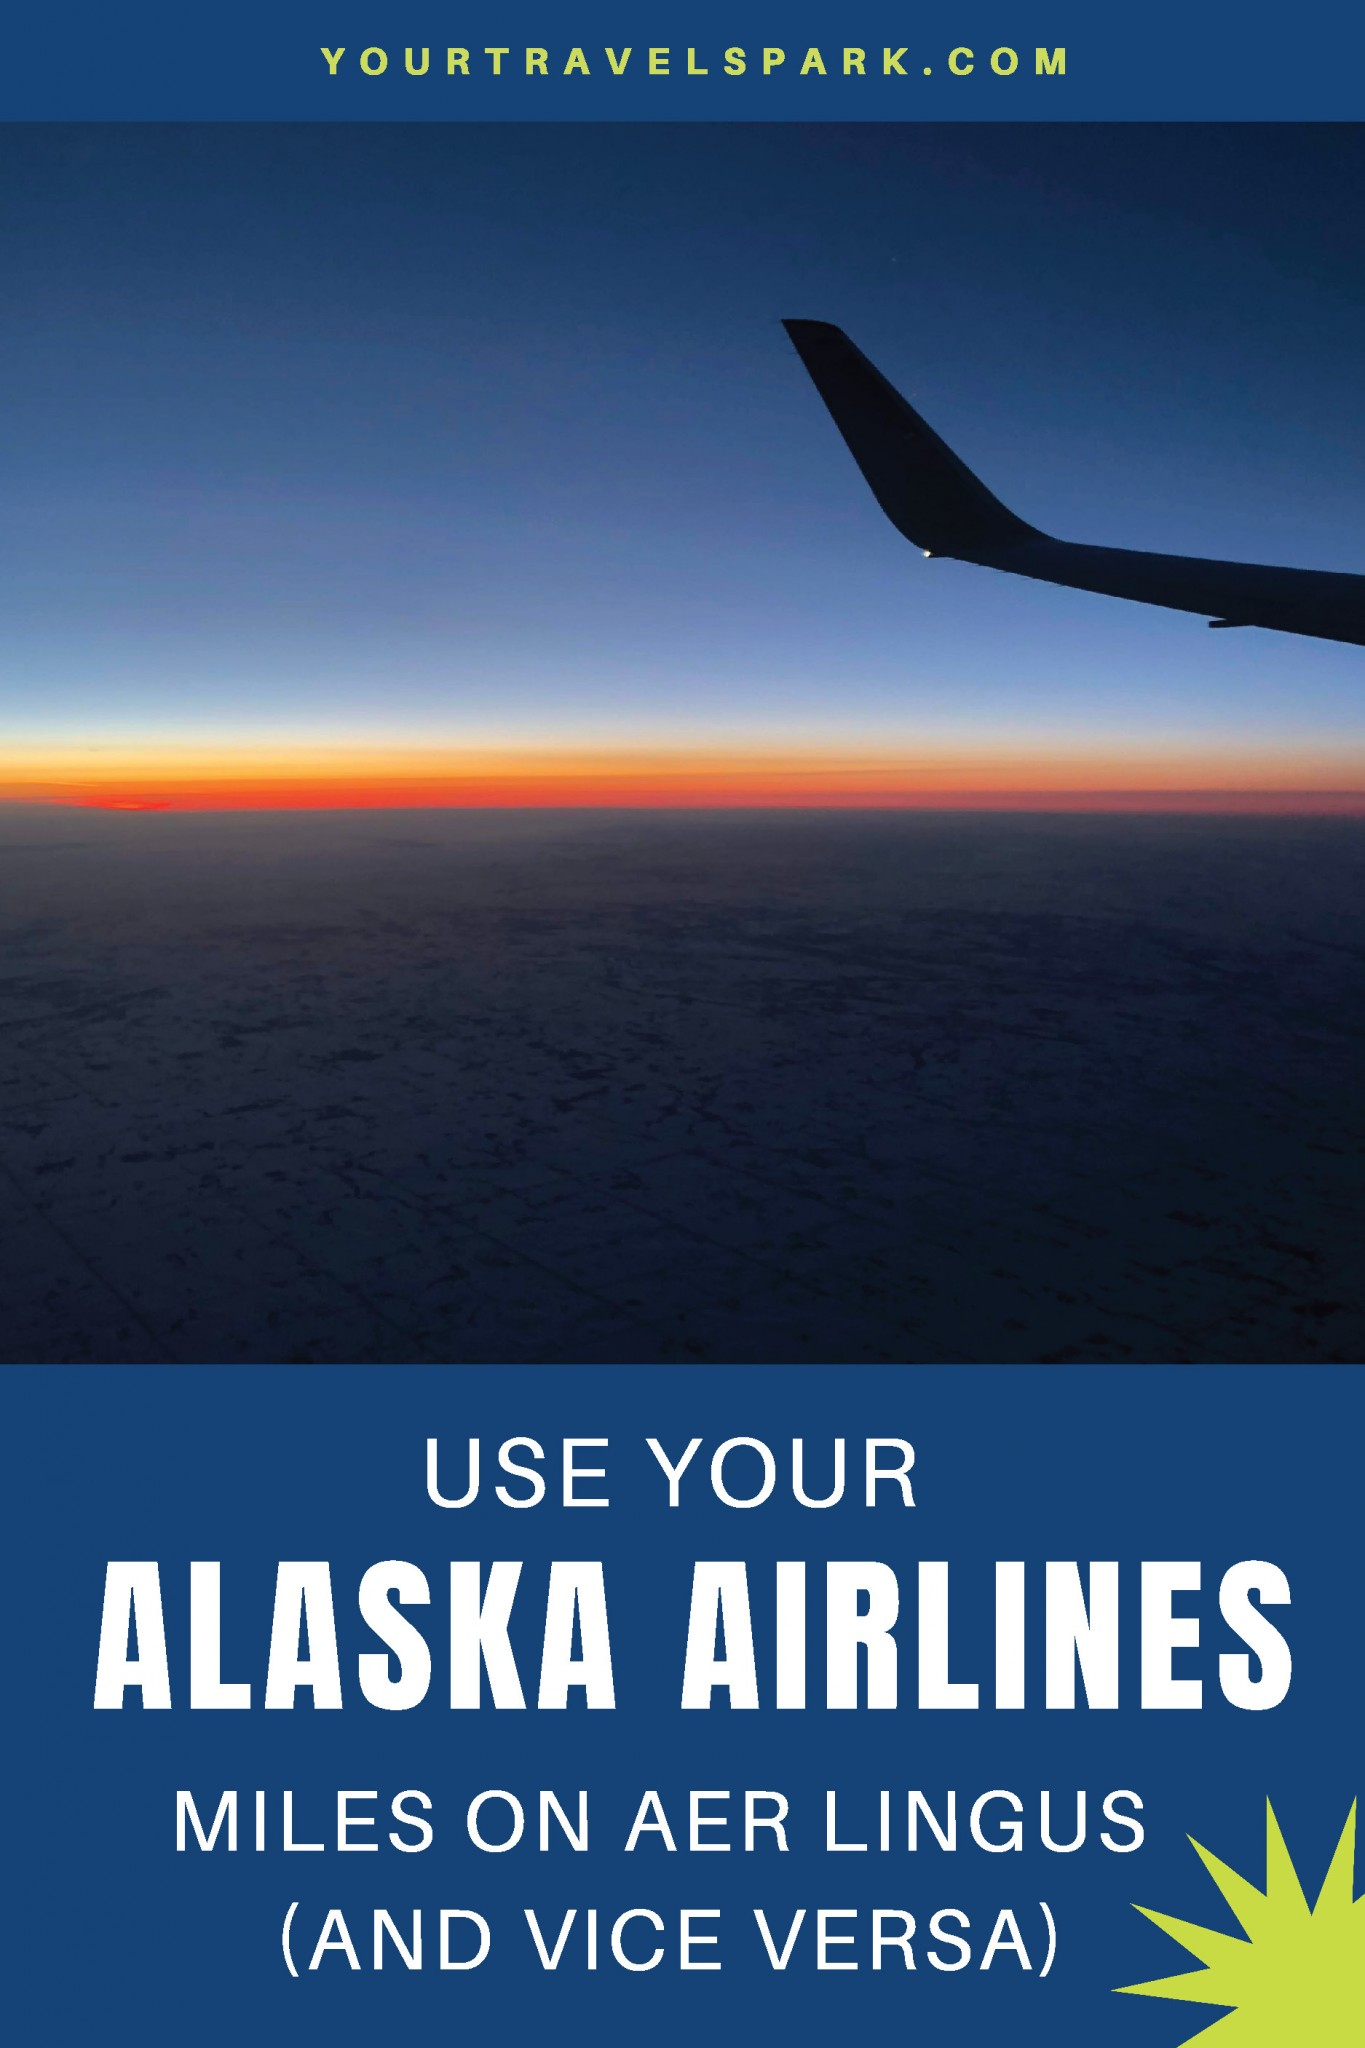 Alaska Mileage Plan members will now be able to earn and redeem miles on Aer Lingus flights and Aer Lingus AerClub members will also be able to earn and redeem miles on Alaska Airlines. #alaskaairline #alaskaair #aerlingus #airlines #airplanes #travel #mileage #mileagepoints #miles #rewards #airlinerewards #mileagerewards #alaskaaerlingus #aerlingusairlines #ireland #dublin #dublinrieland